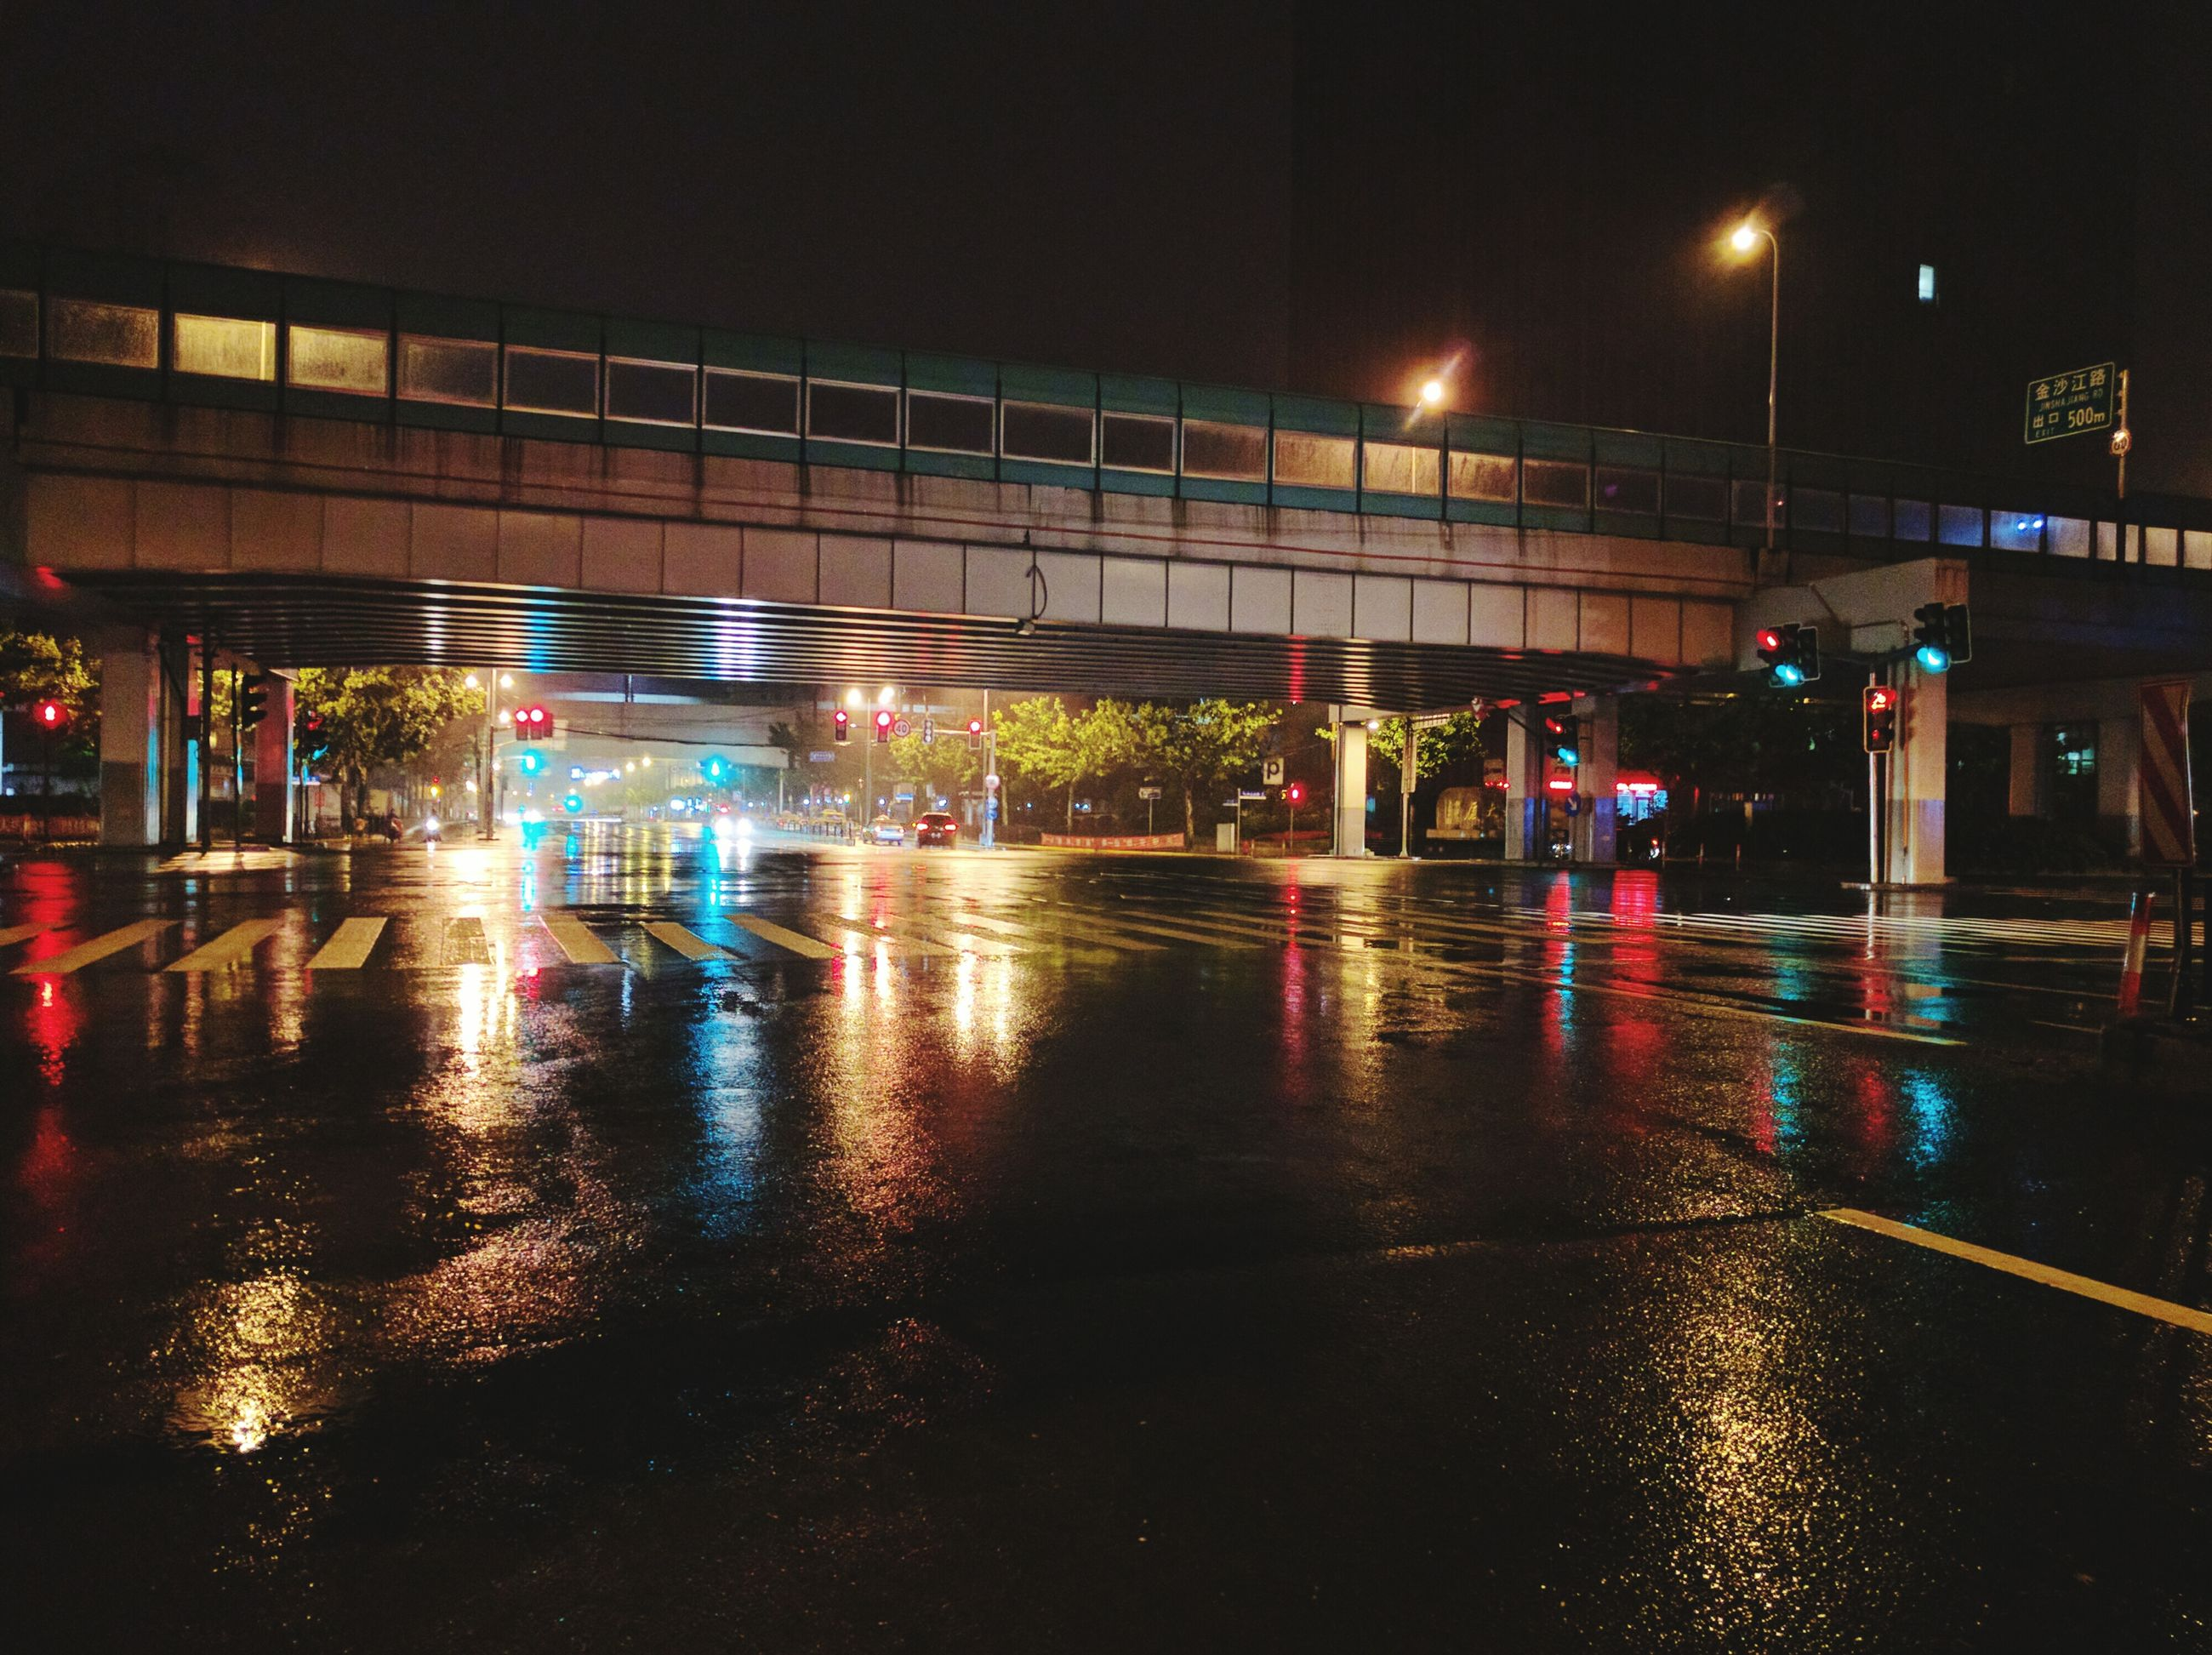 illuminated, night, transportation, built structure, architecture, city, building exterior, street, reflection, wet, street light, lighting equipment, city life, road, mode of transport, motion, long exposure, water, rain, blurred motion